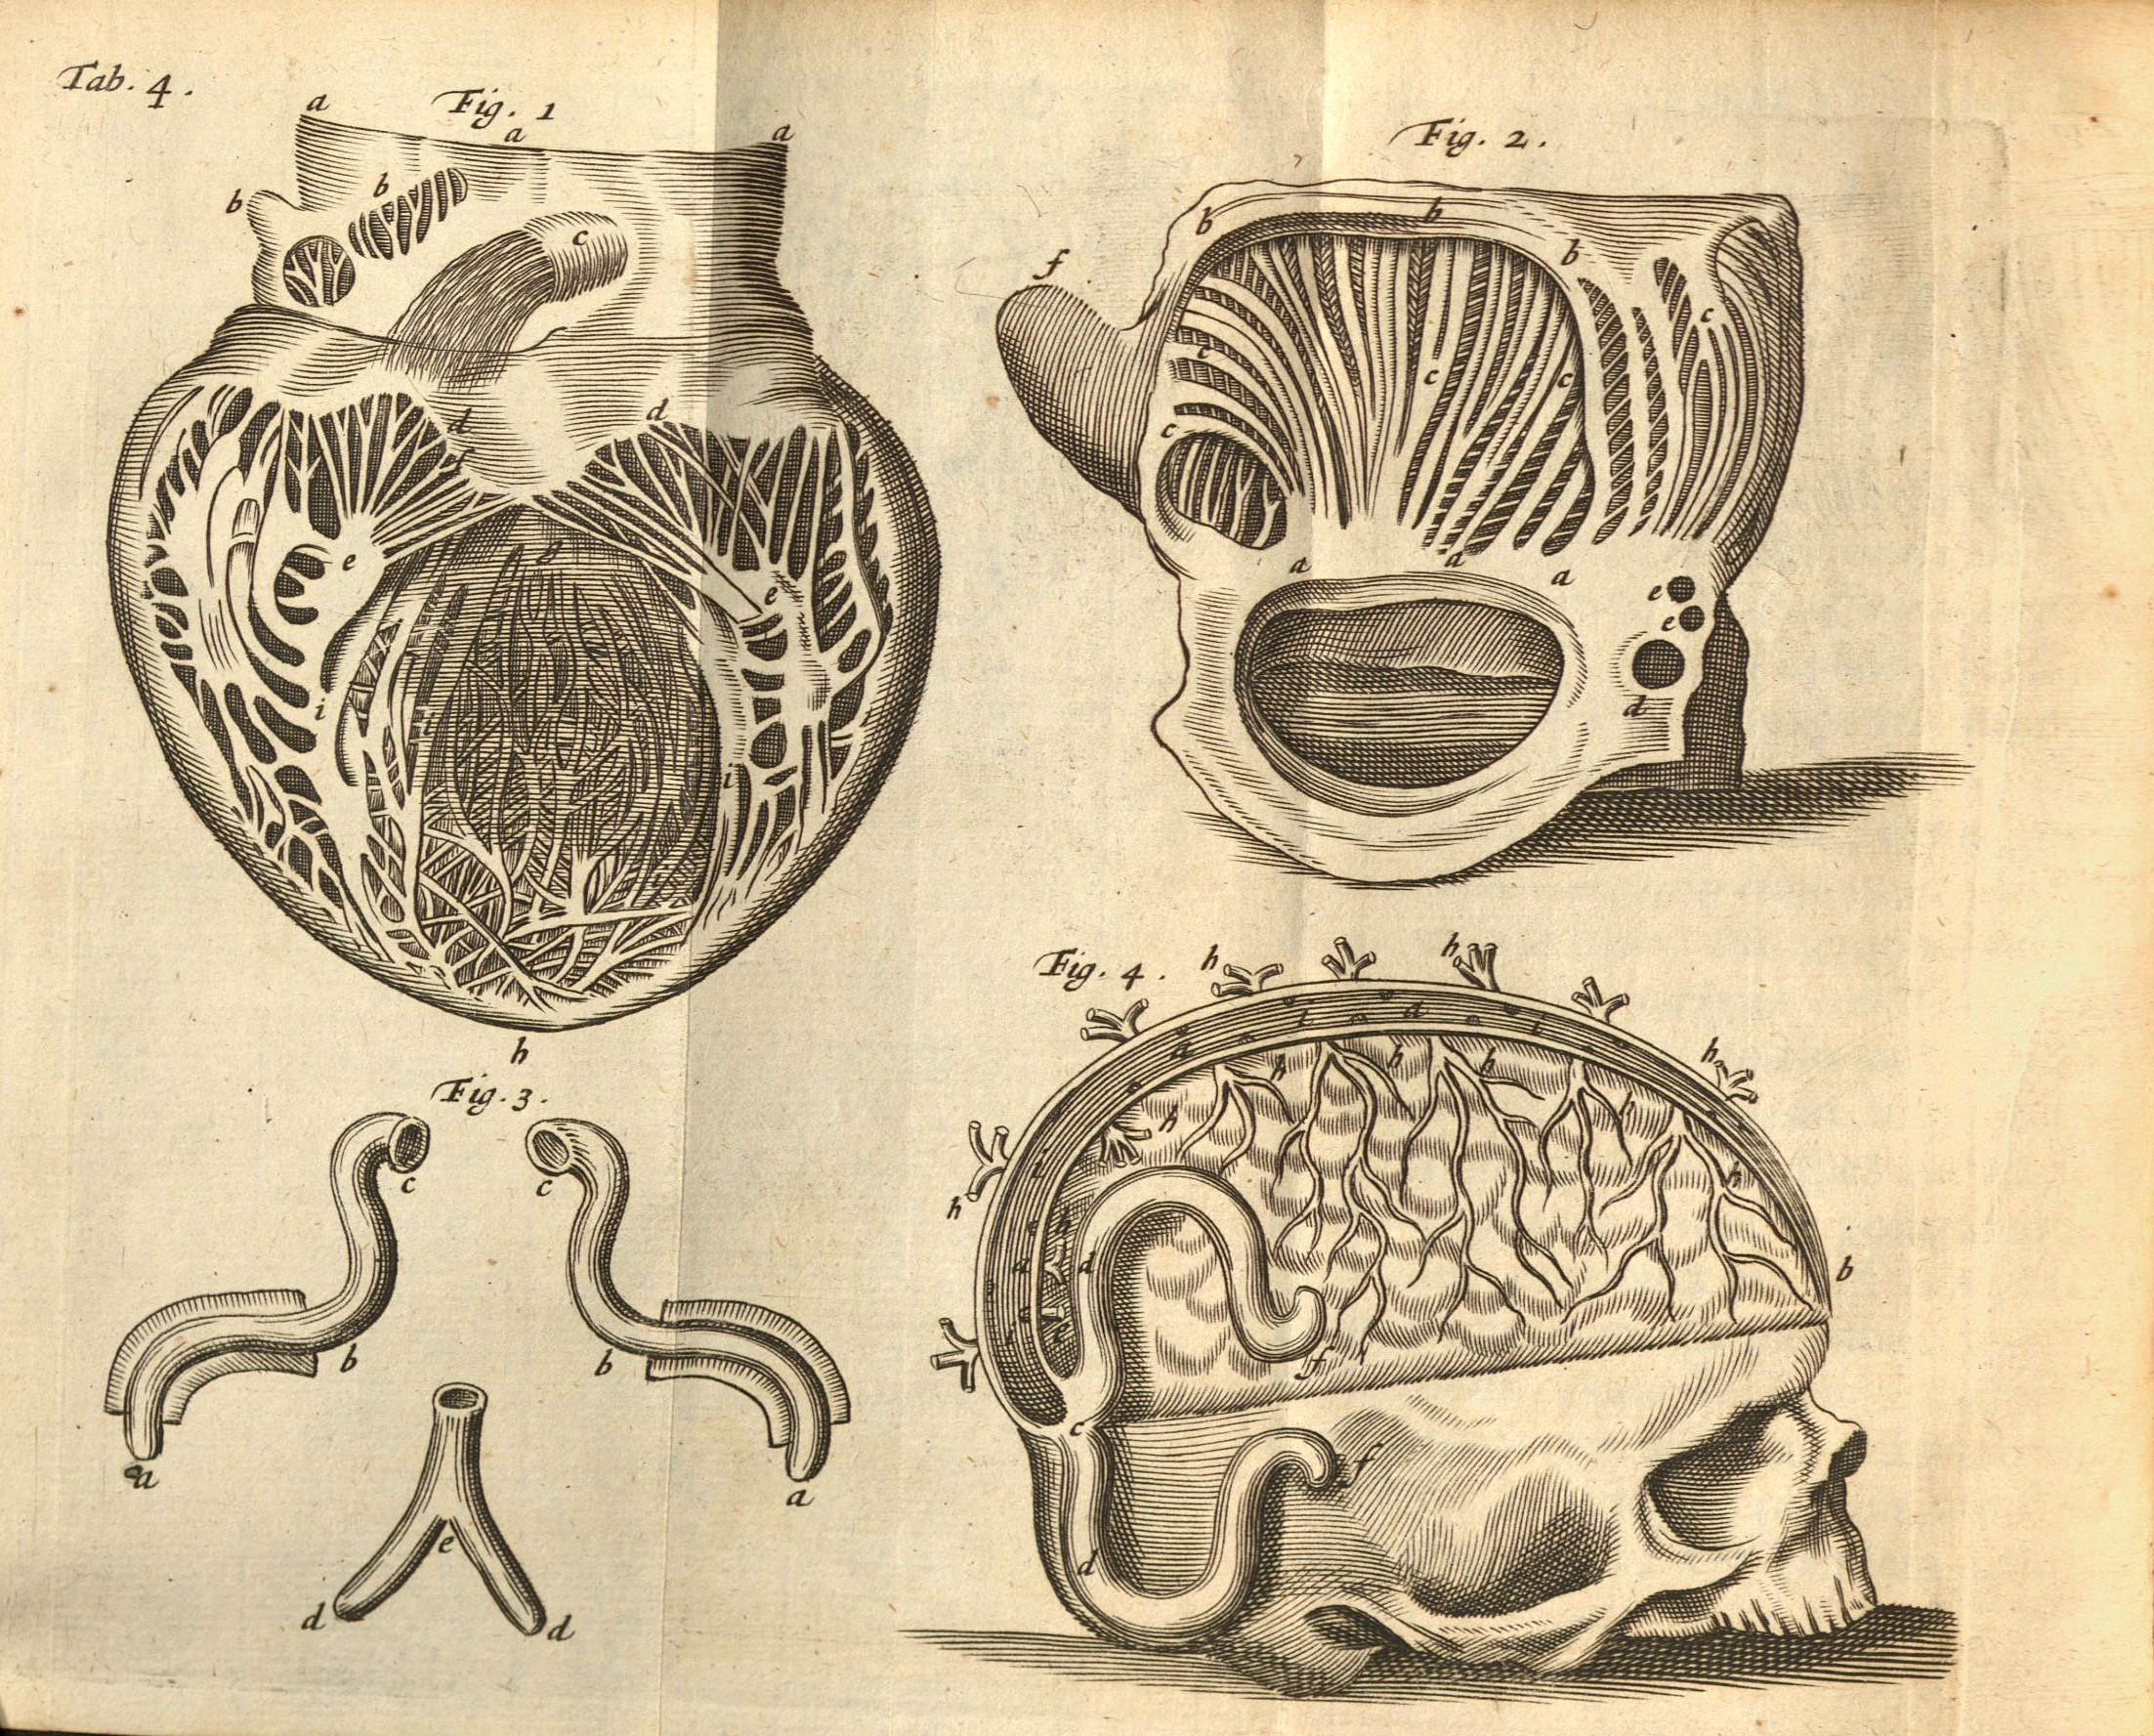 Scan of old diagrams of a human heart